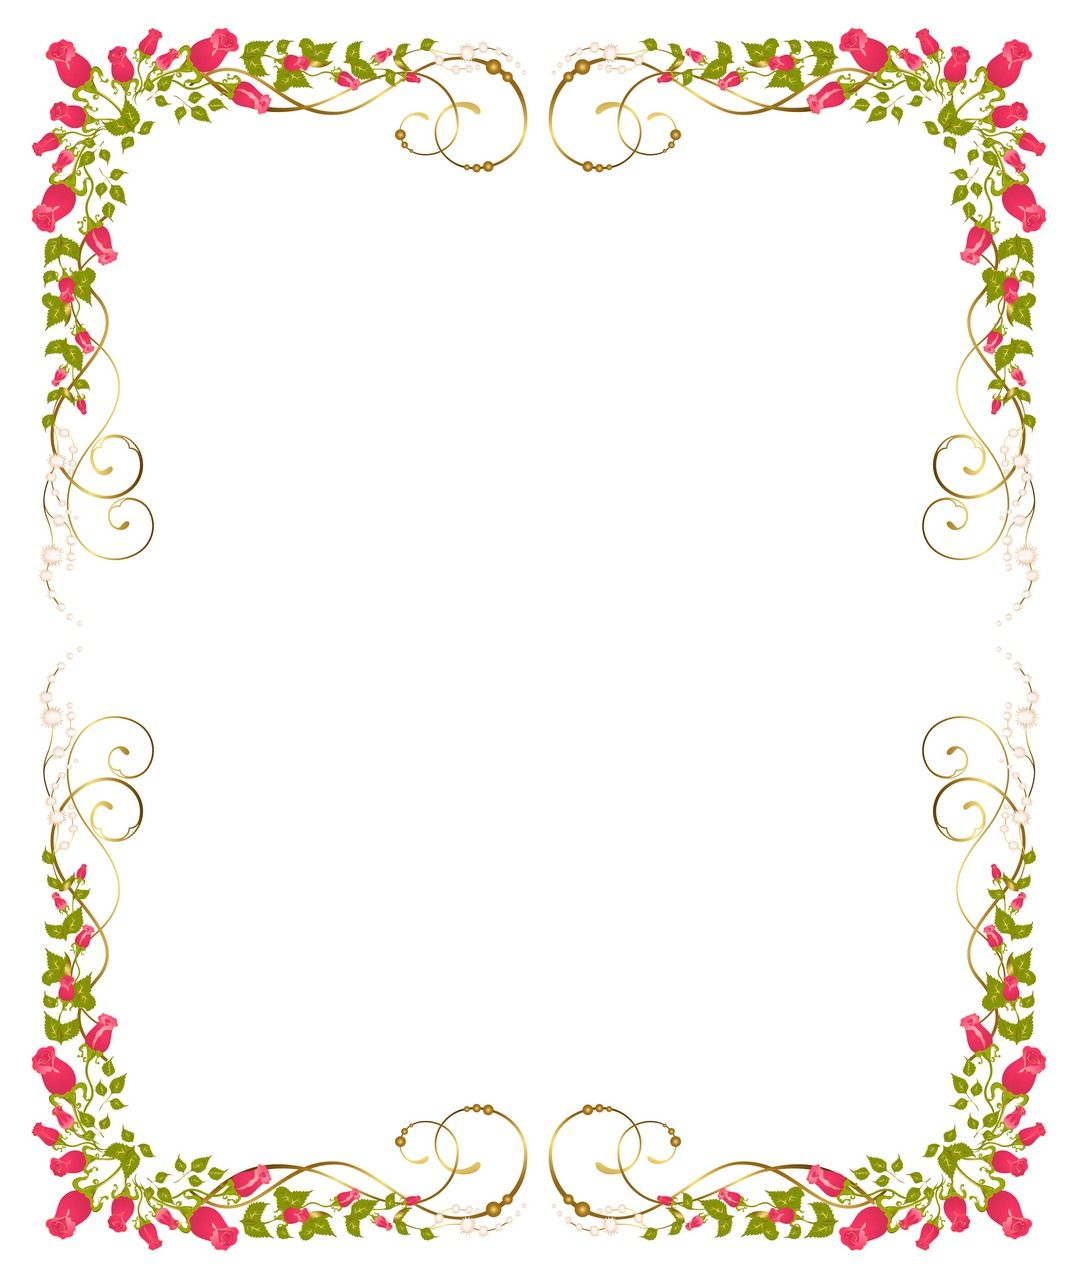 hight resolution of flower background frame 09 vector eps free download logo icons brand emblems